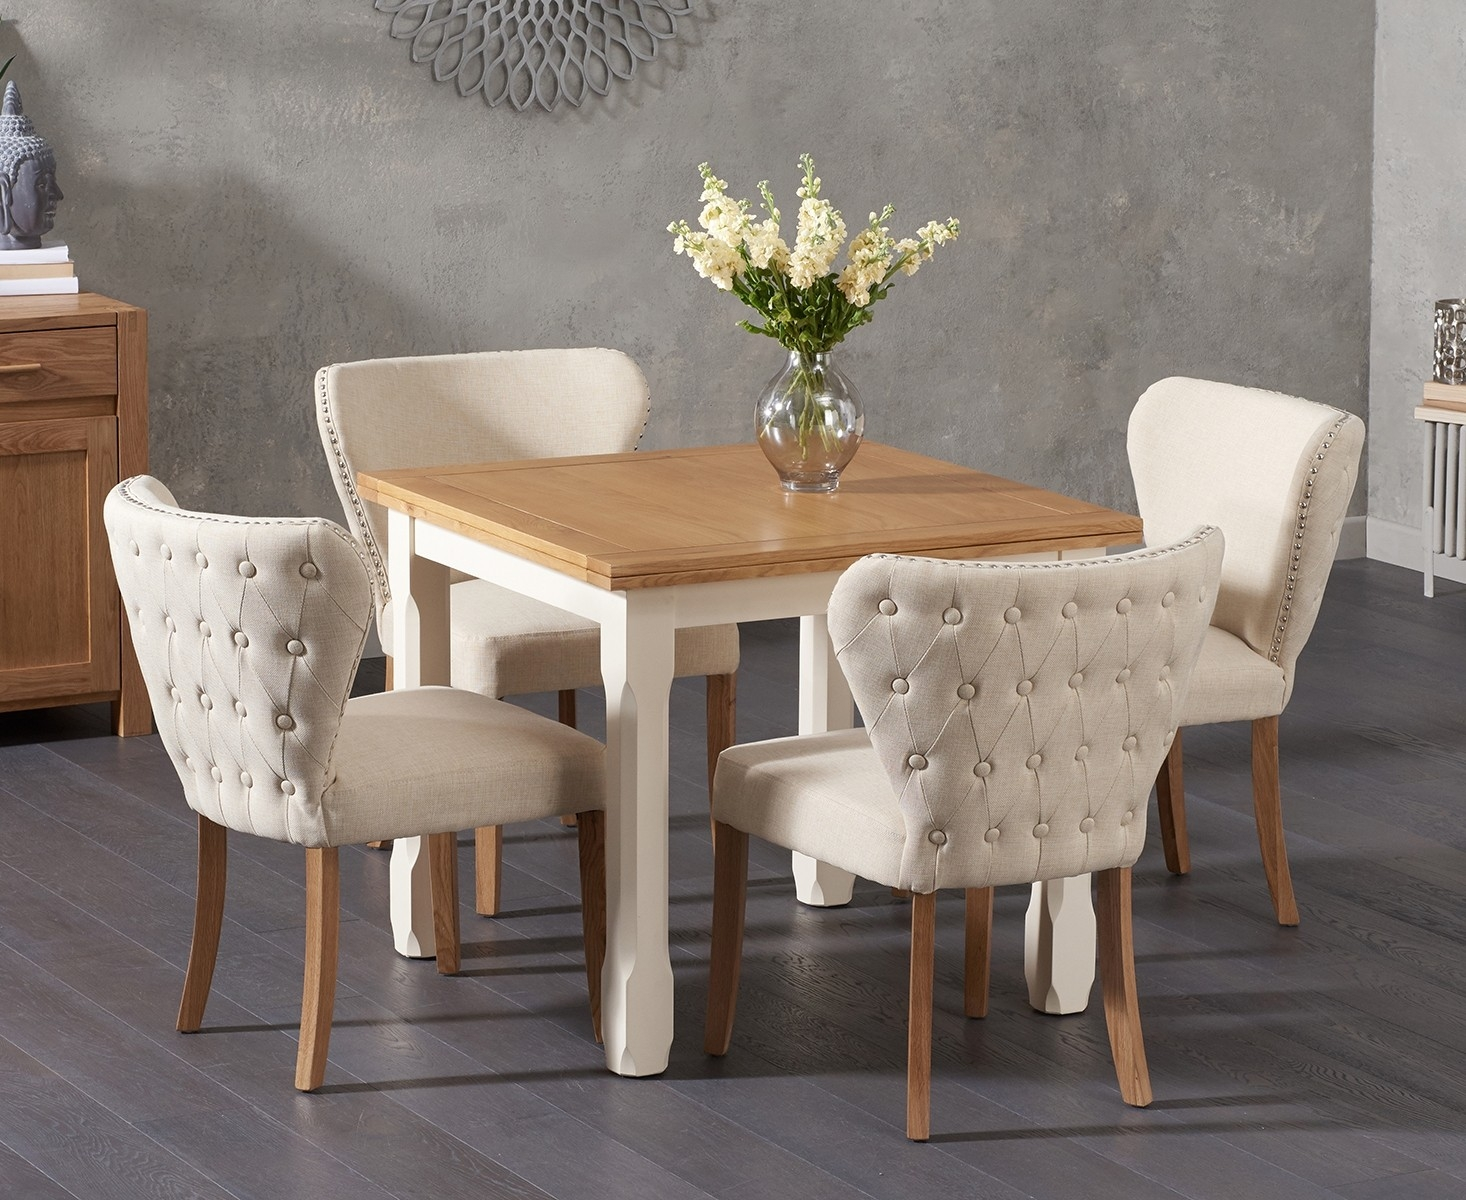 62 off somerset 90cm flip top oak and cream dining table for Table design 90 cm